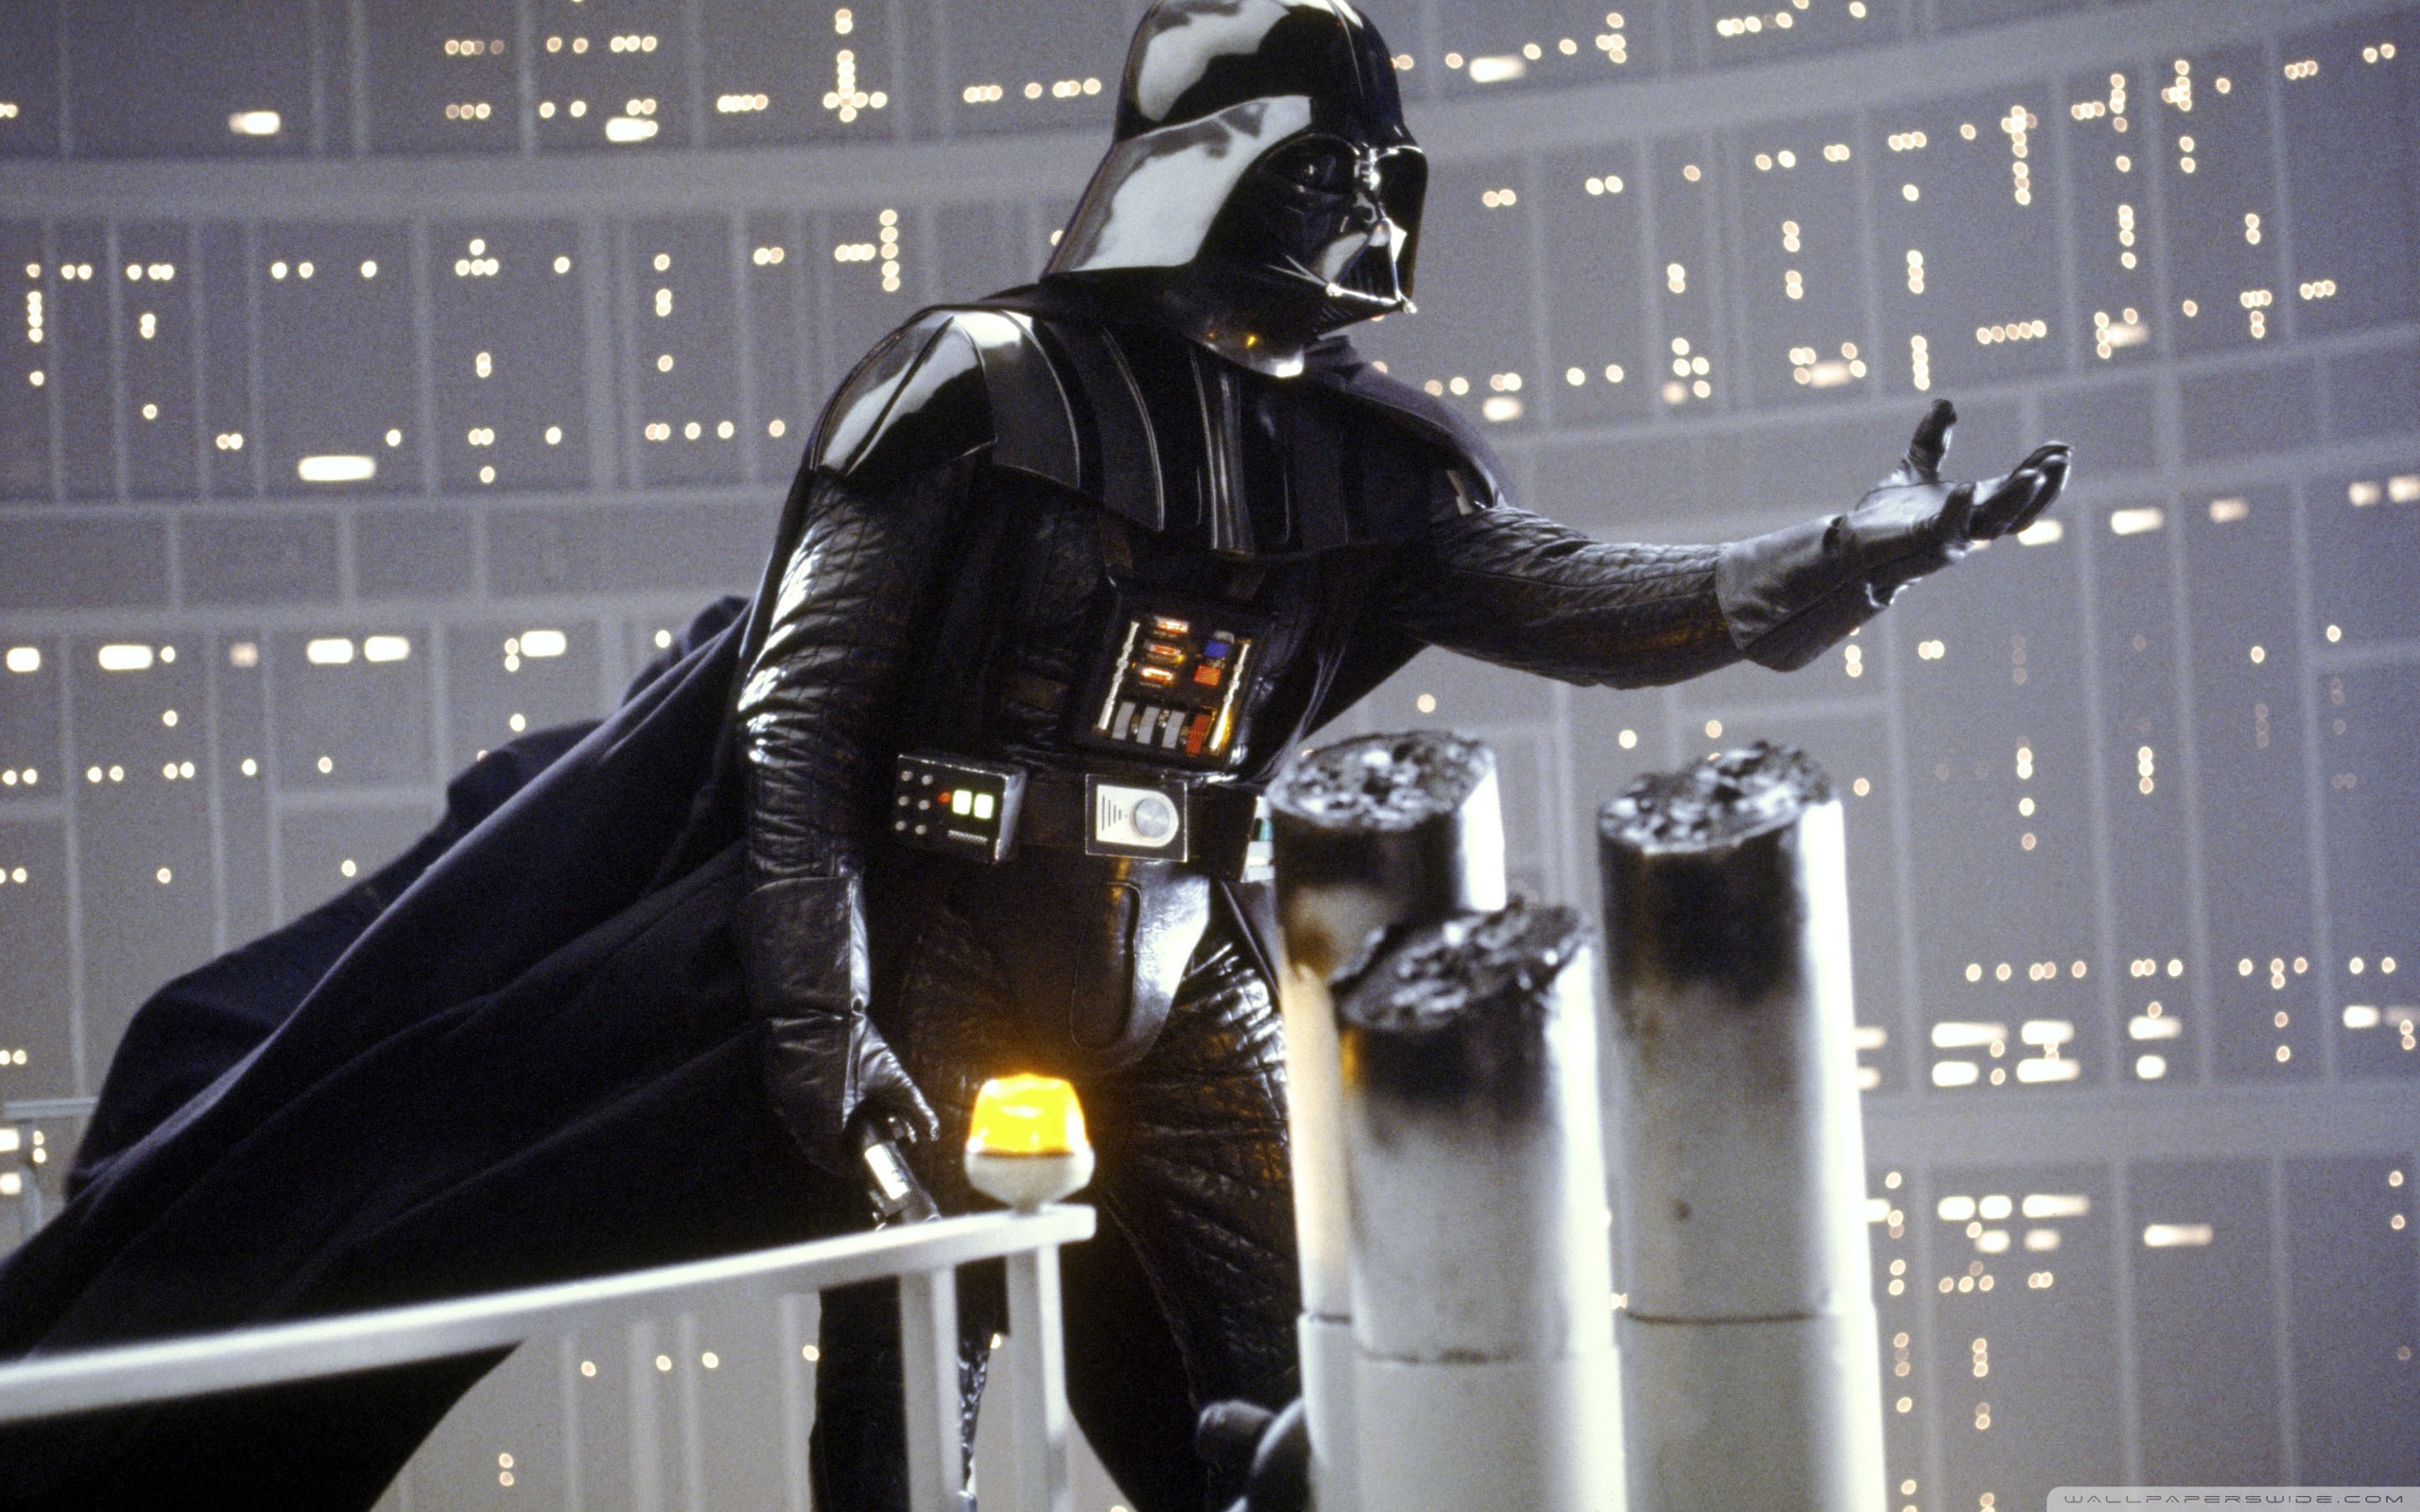 From learner to master: Six famous UK leaders that started off as apprentices